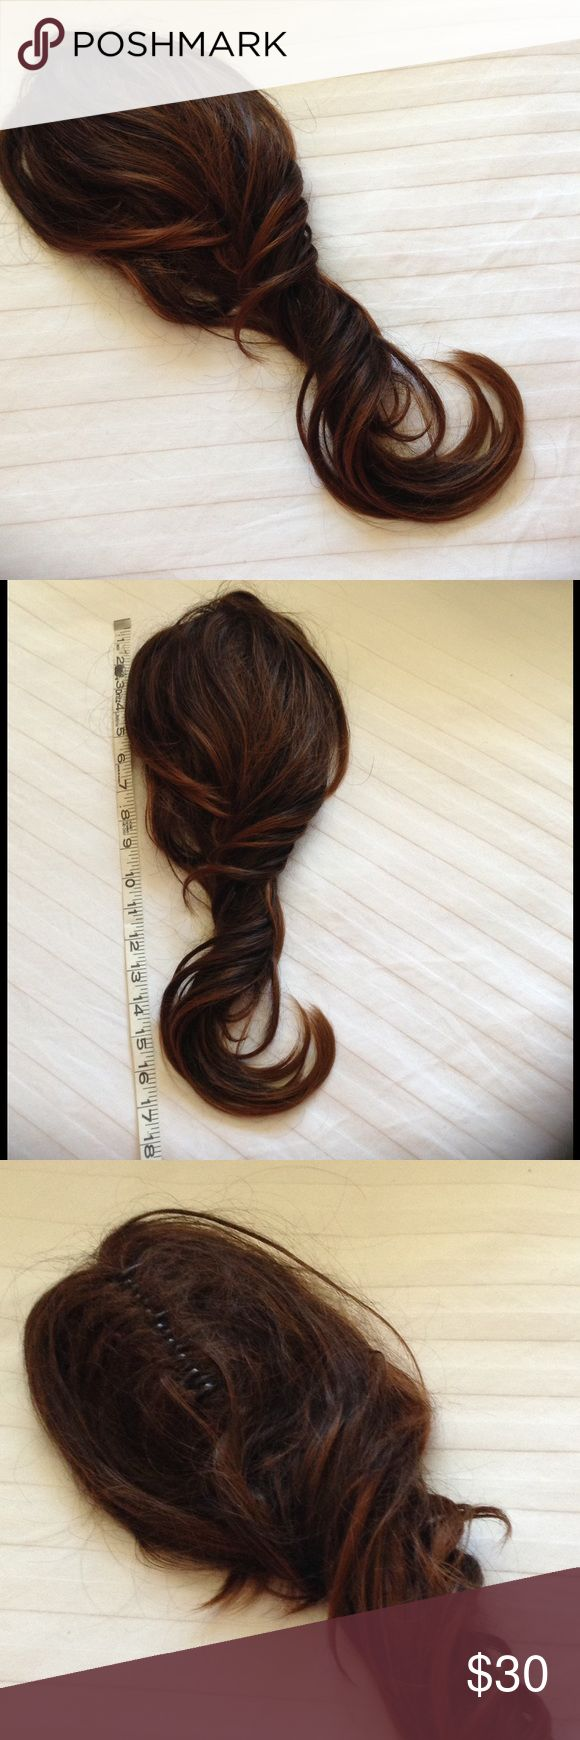 GORGEOUS LONG BROWN CURL PONY TAIL NWOT GORGEOUS LONG CURL BROWN WITH HIGH LIGHTED PONY TAIL NWOT PLEASE LOOK AT SECOND PIC FOR MEASUREMENTS FEELS LIKE REAL HAIR, NEEDS TO BE COMBED OUT, HAS BEEN STORED AWAY Accessories